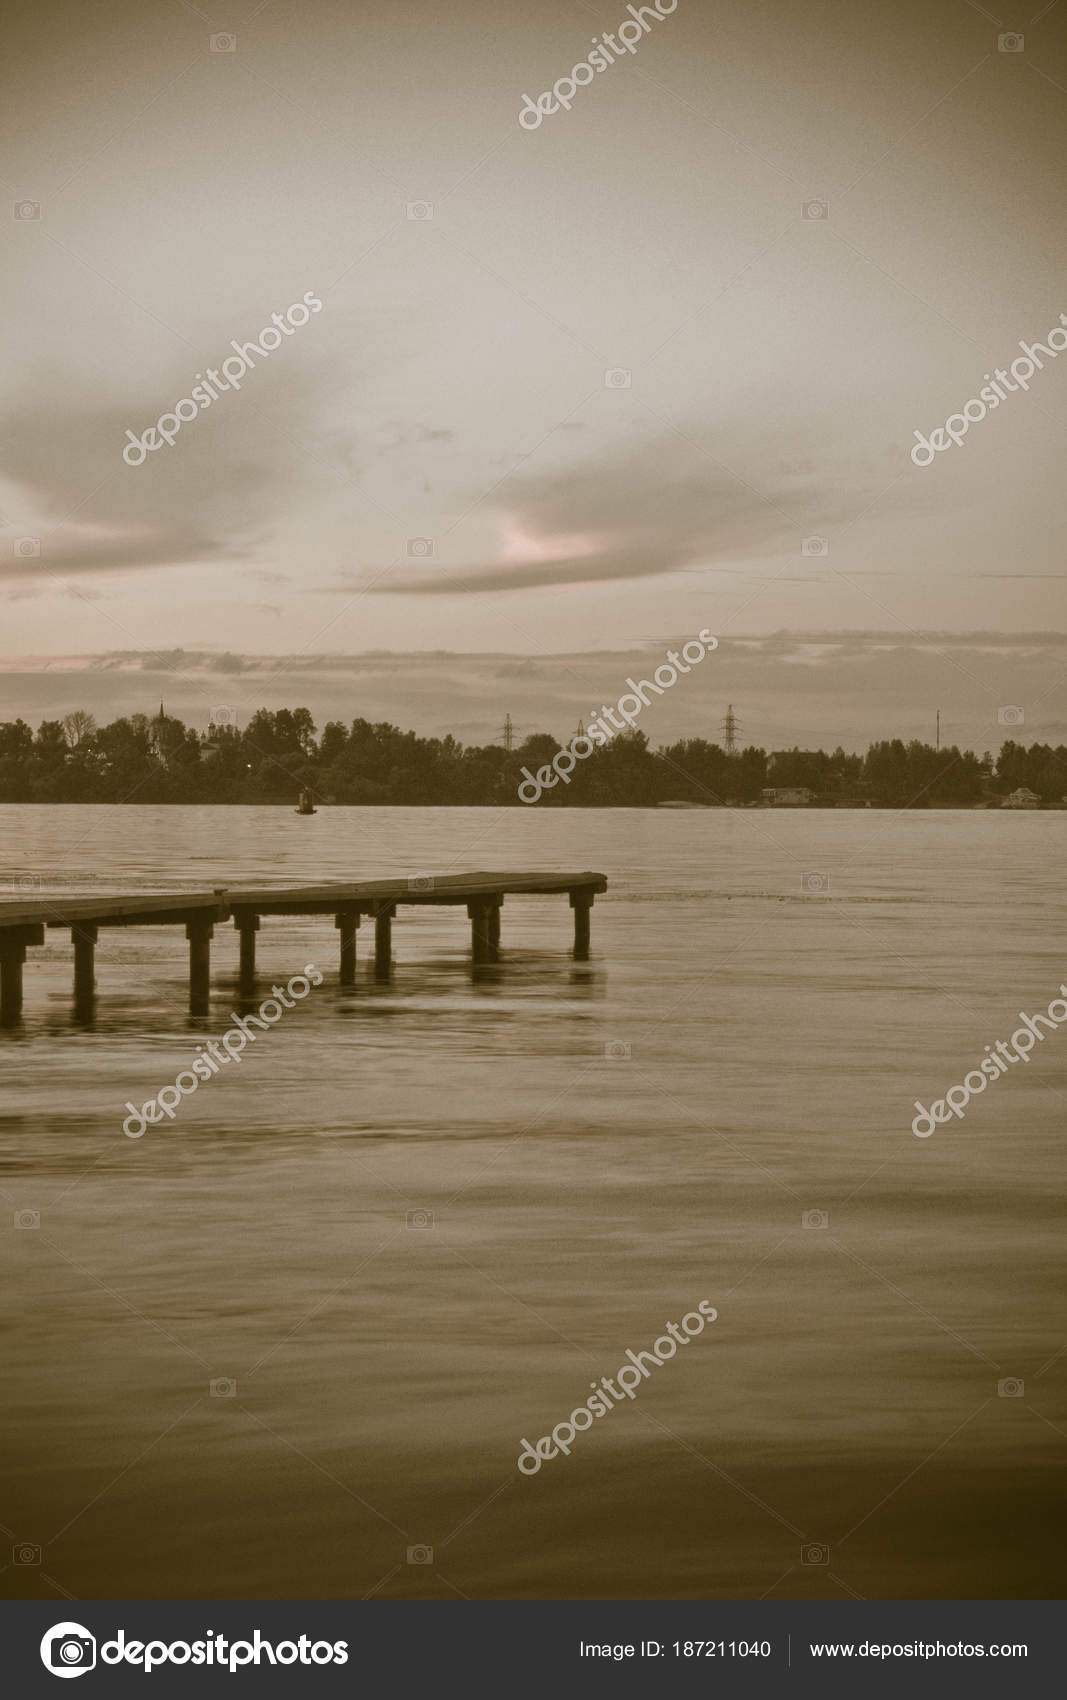 pier auf der see im sommerabend stockfoto biggimot 187211040. Black Bedroom Furniture Sets. Home Design Ideas